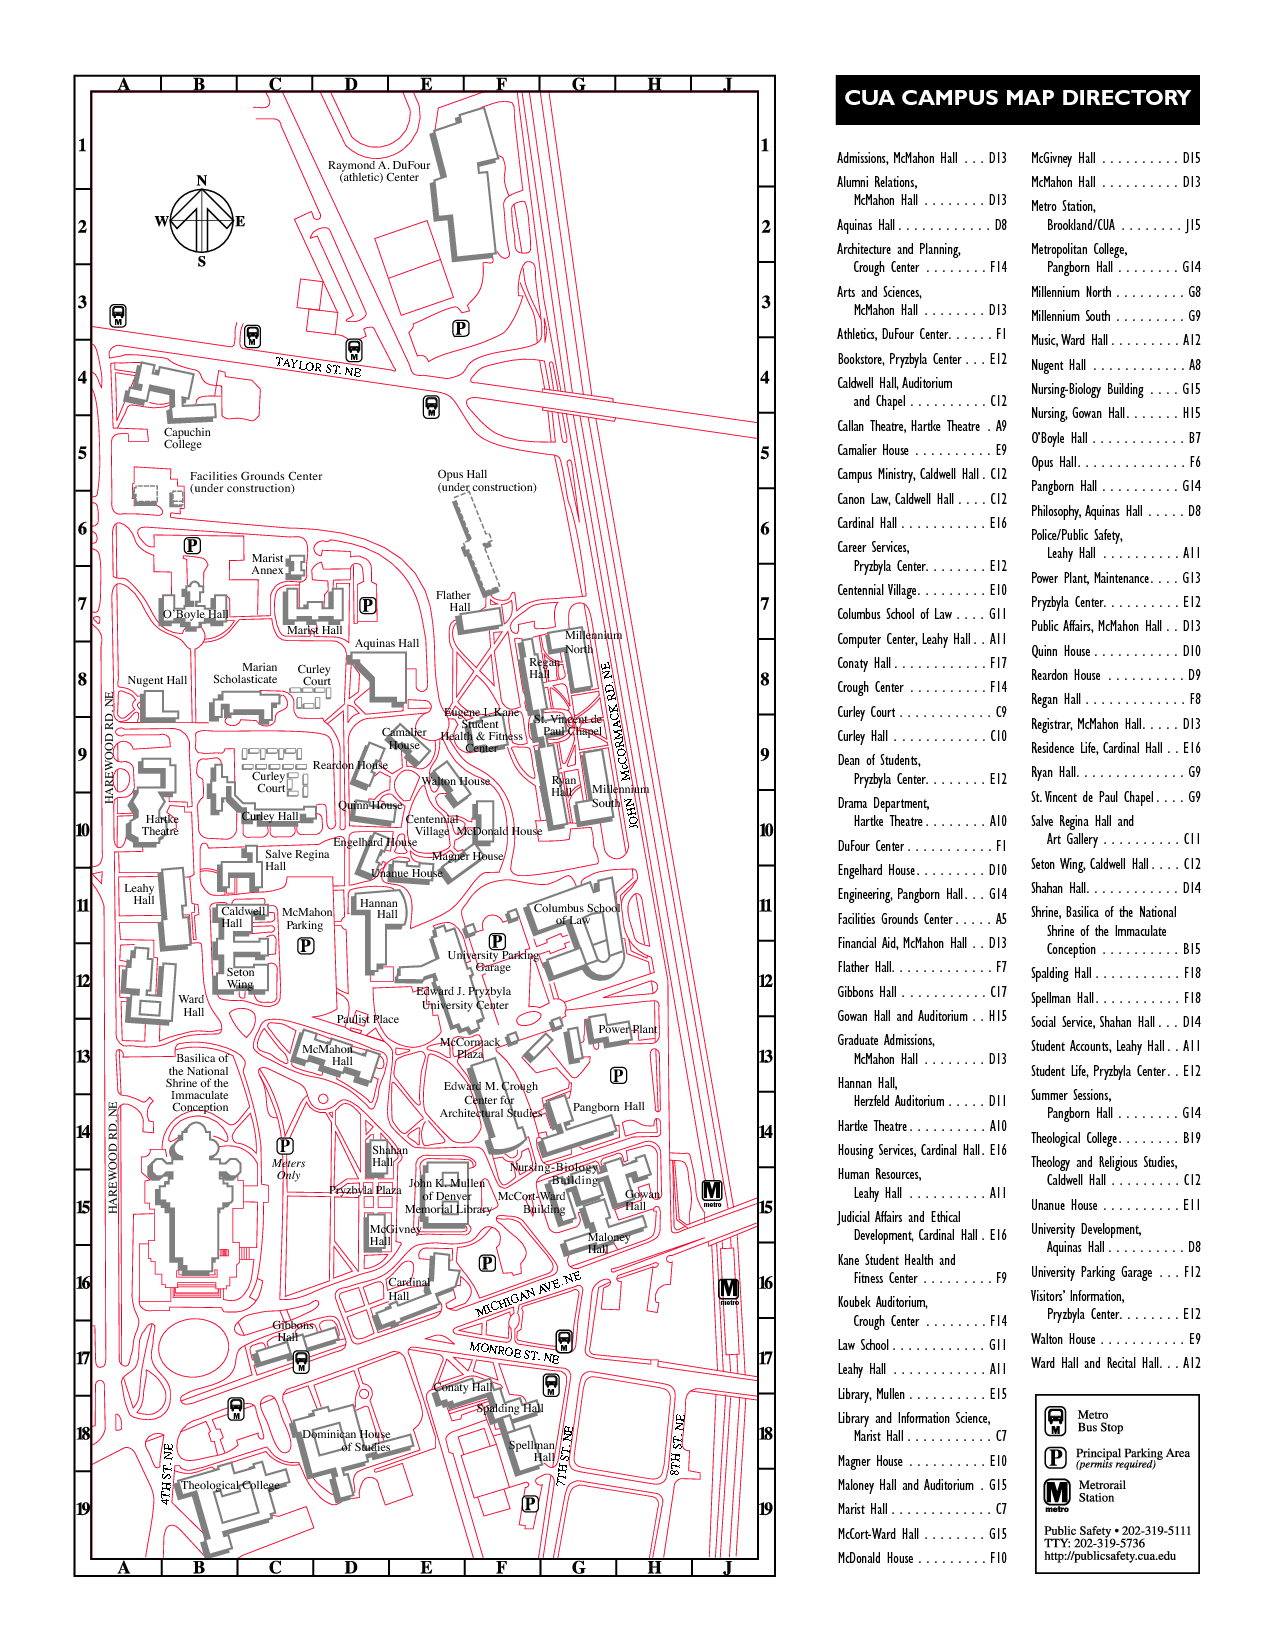 CUA campus map directory | BASILICA OF THE IMMACULATE CONCEPTION